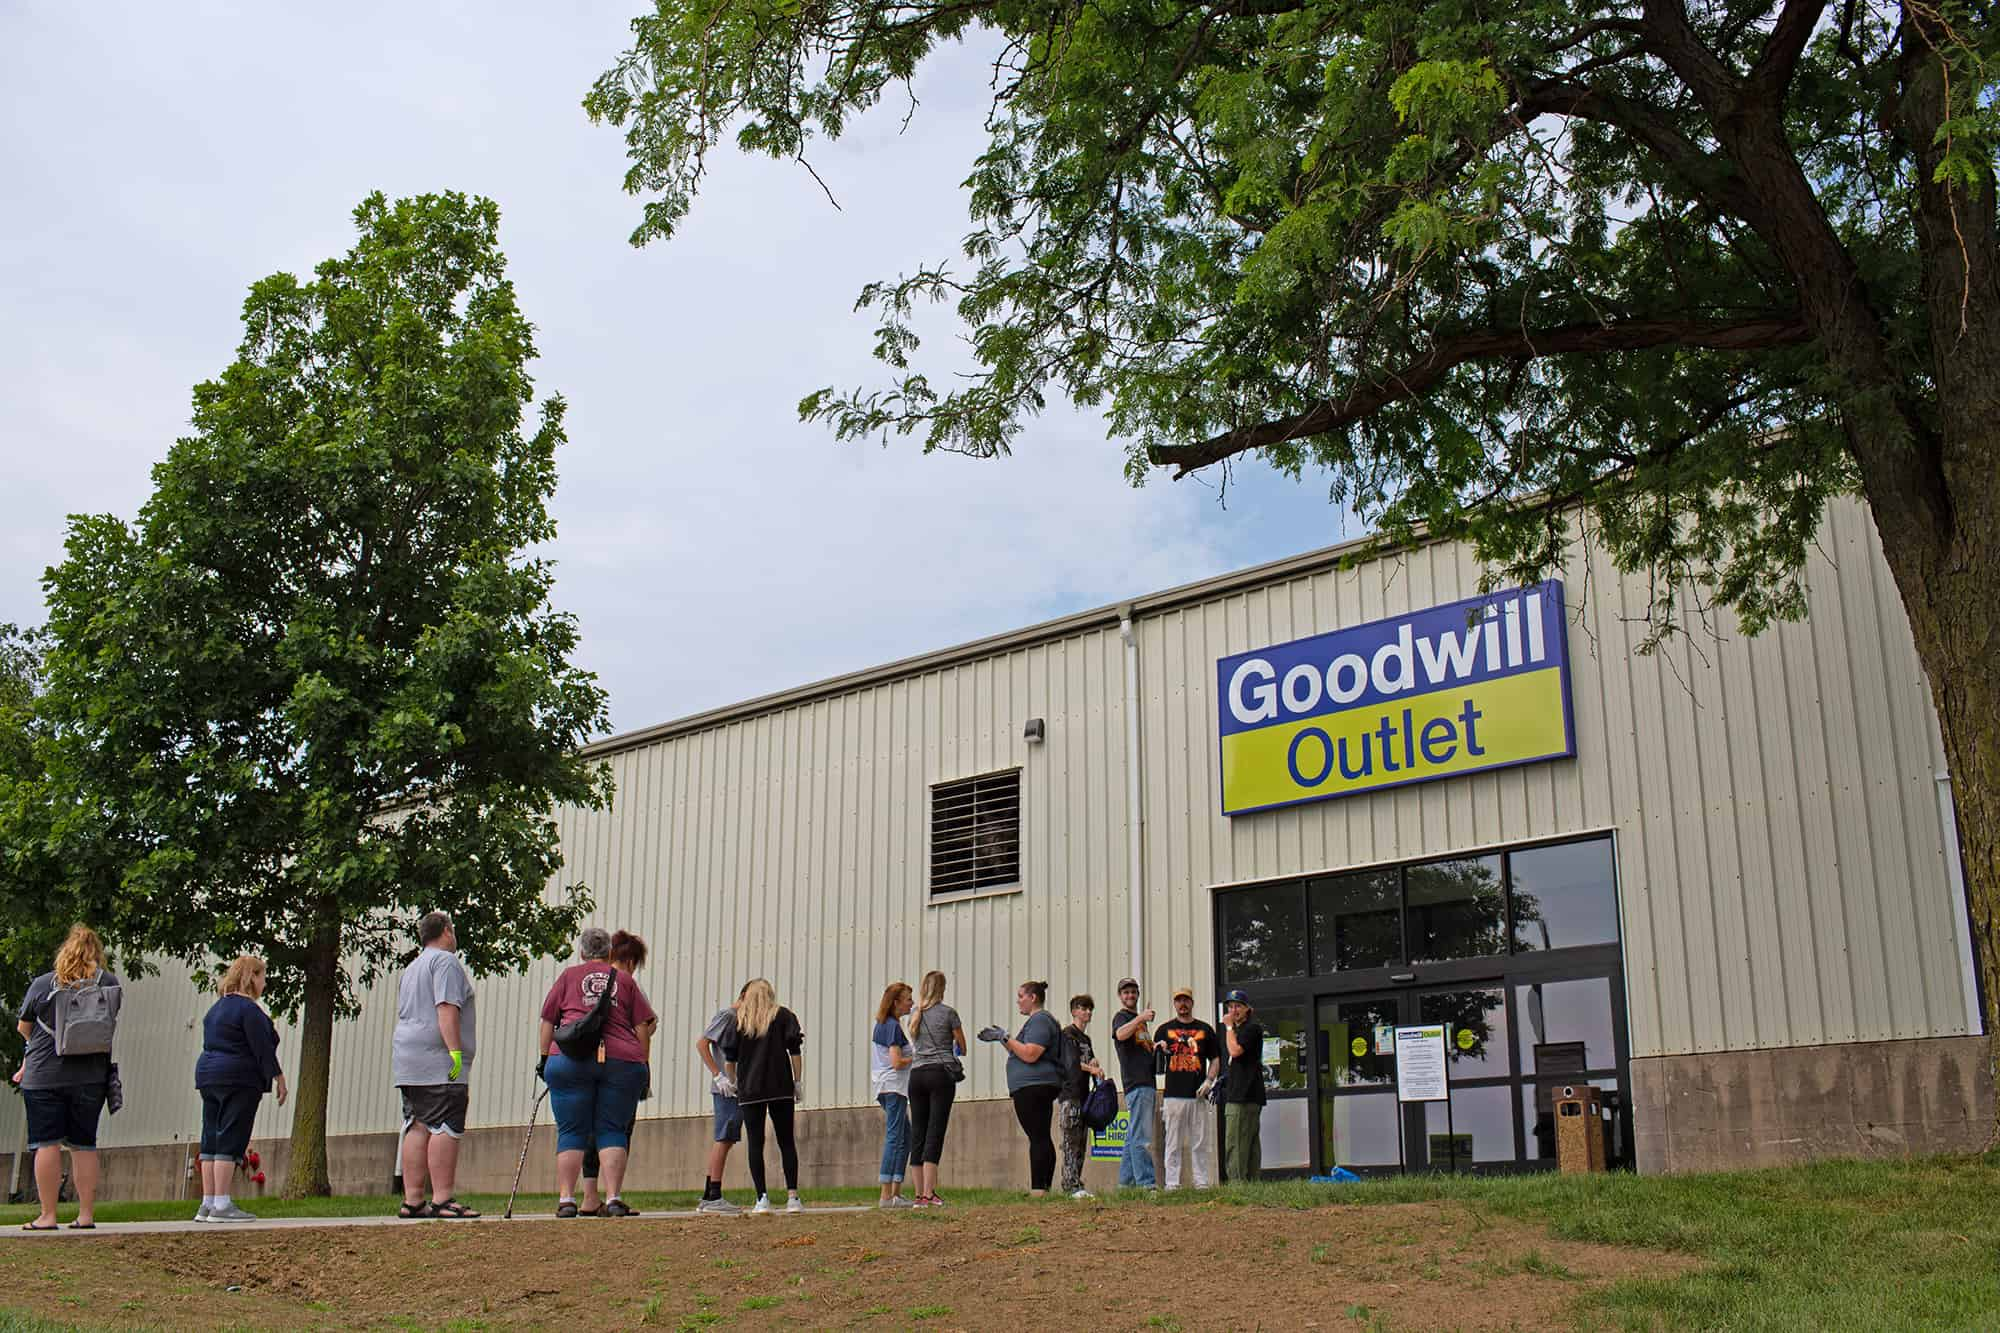 Exterior view of the Goodwill Outlet Store in Cedar Rapids, Iowa.